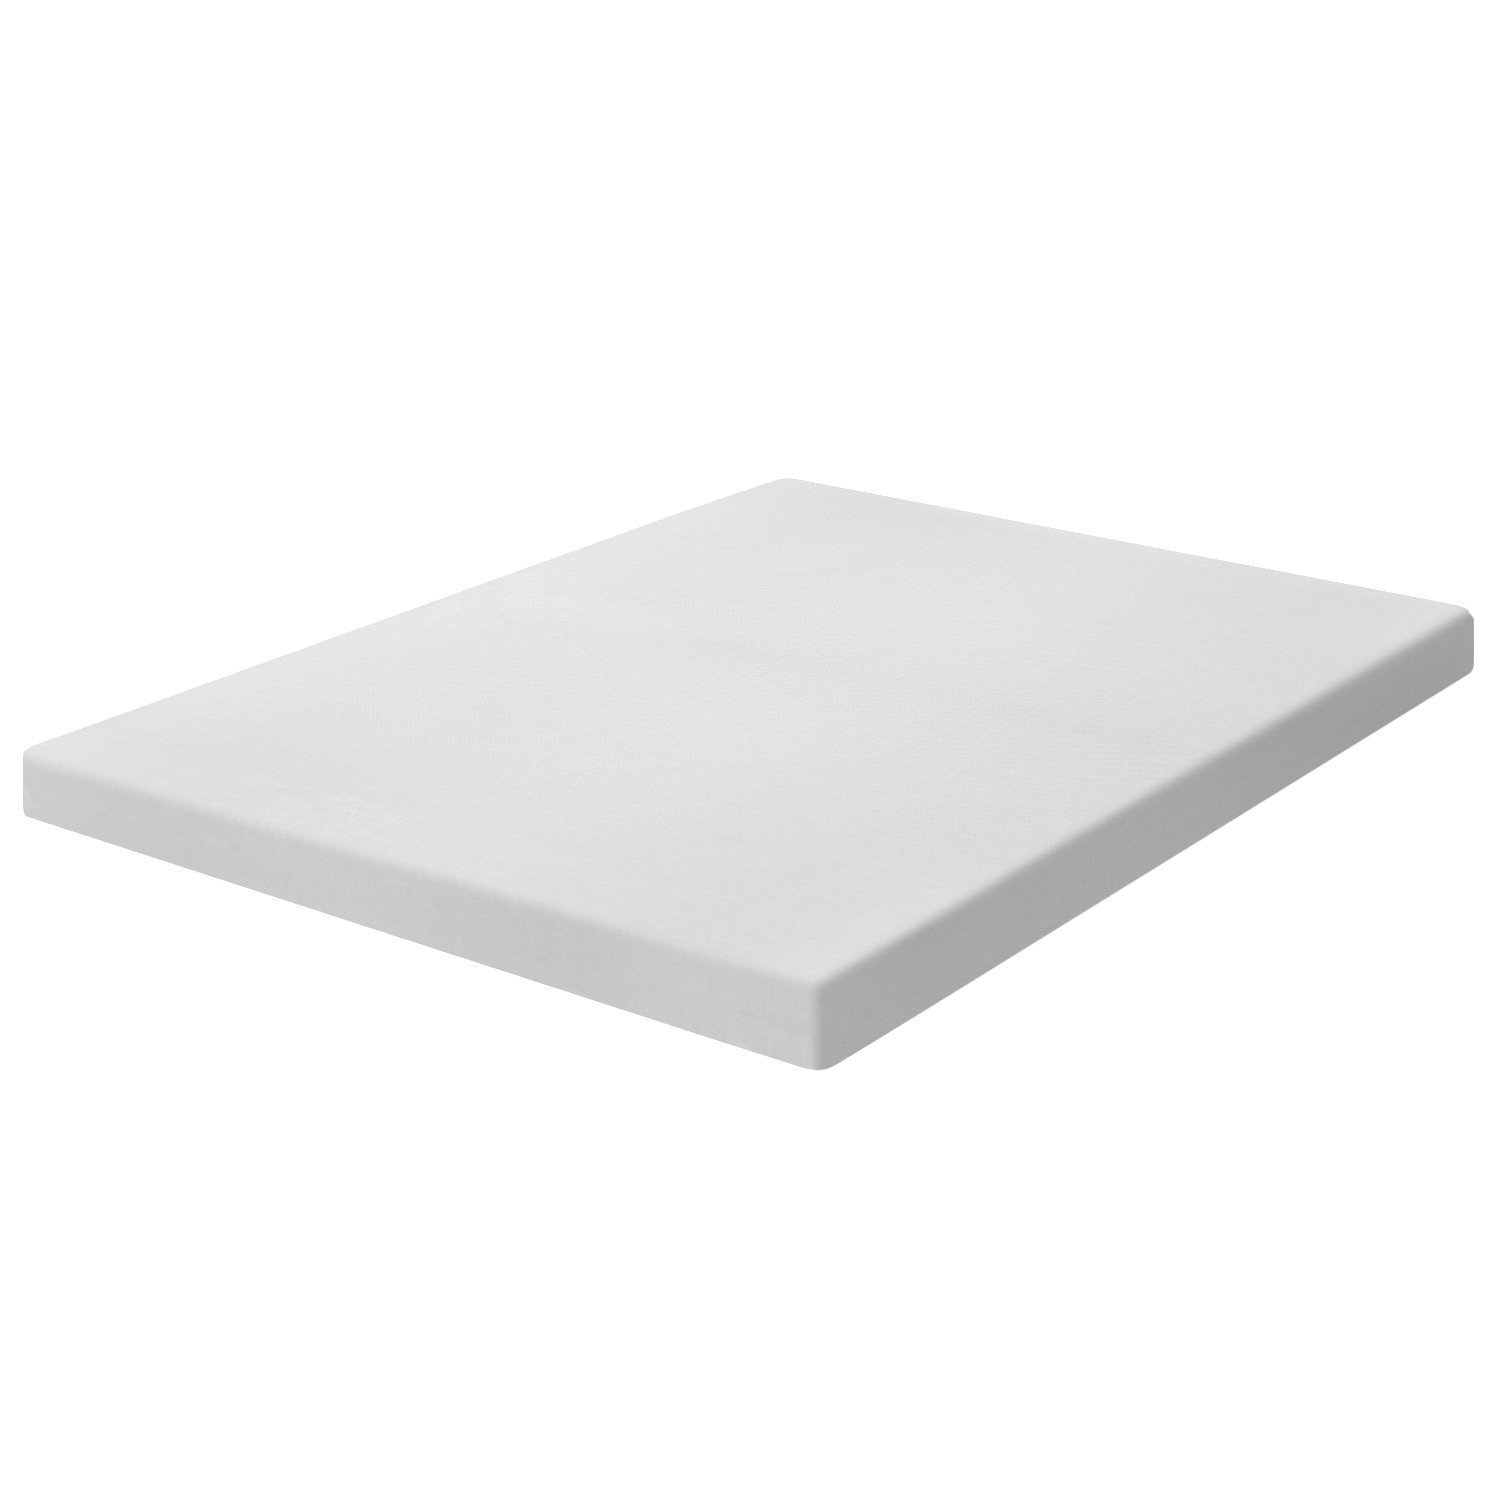 free twin size foam memory cool mattresses medium pillow inch itm cover firm pillows mattress